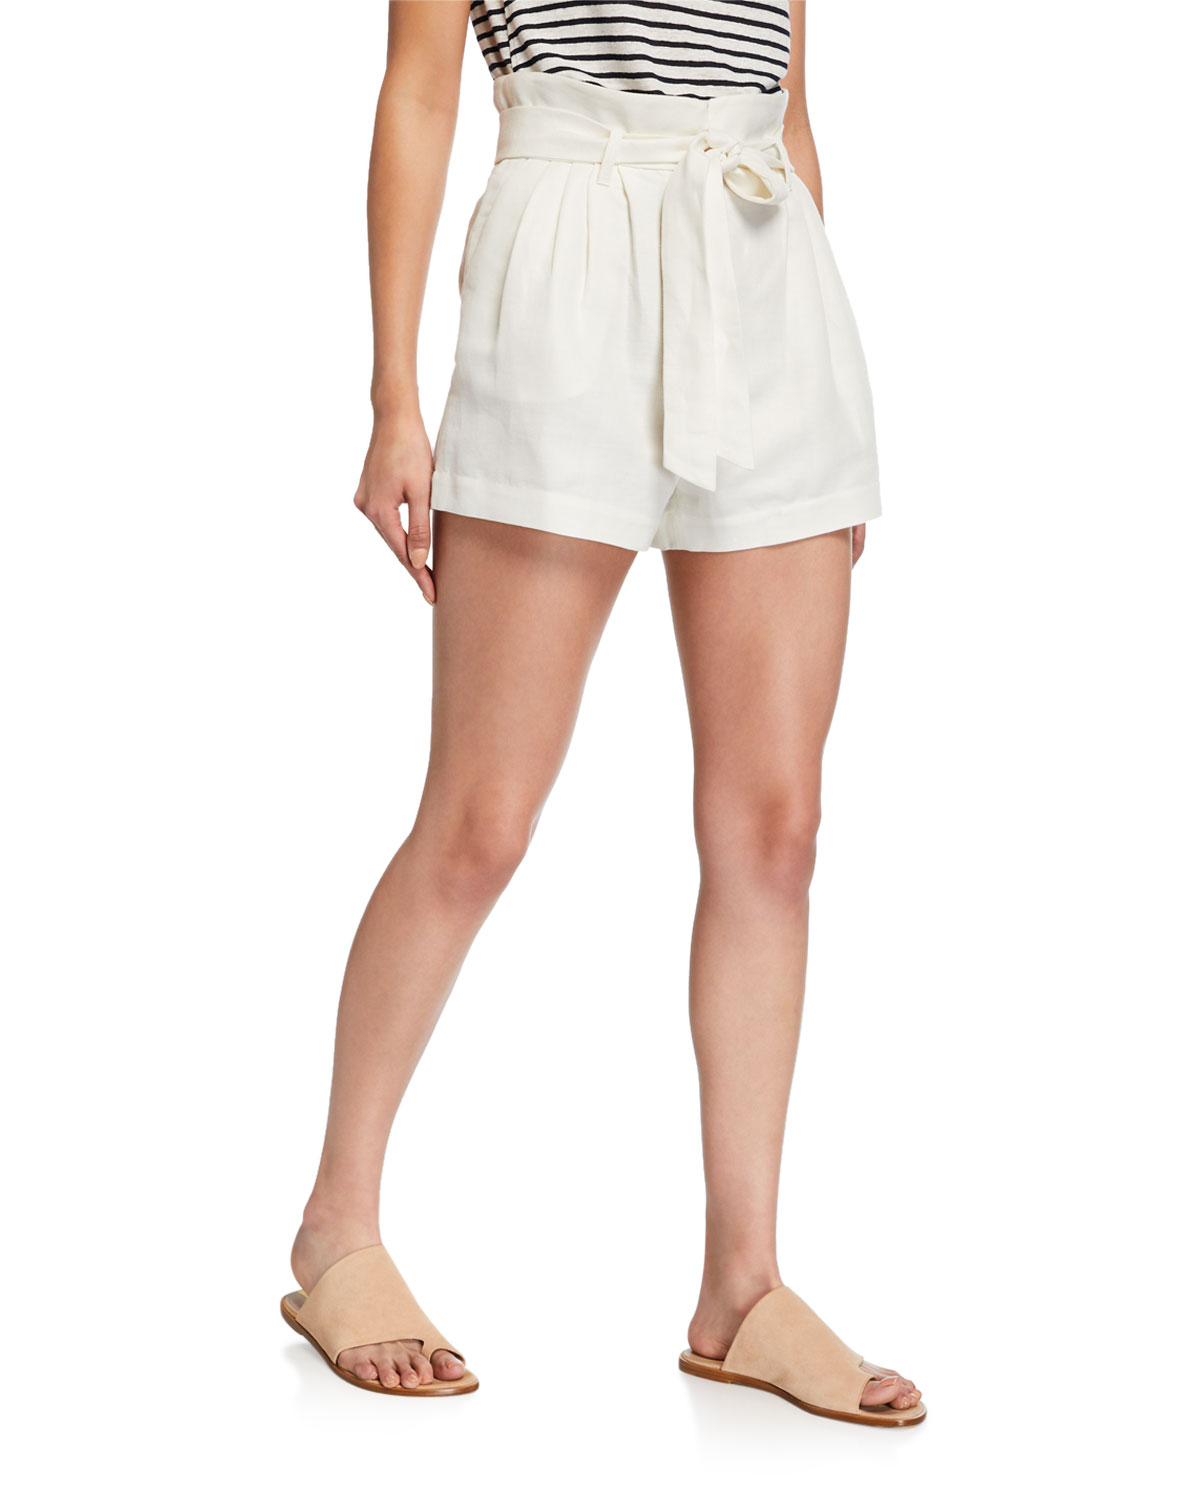 Frame Shorts HIGH-RISE TIE-UP SHORTS